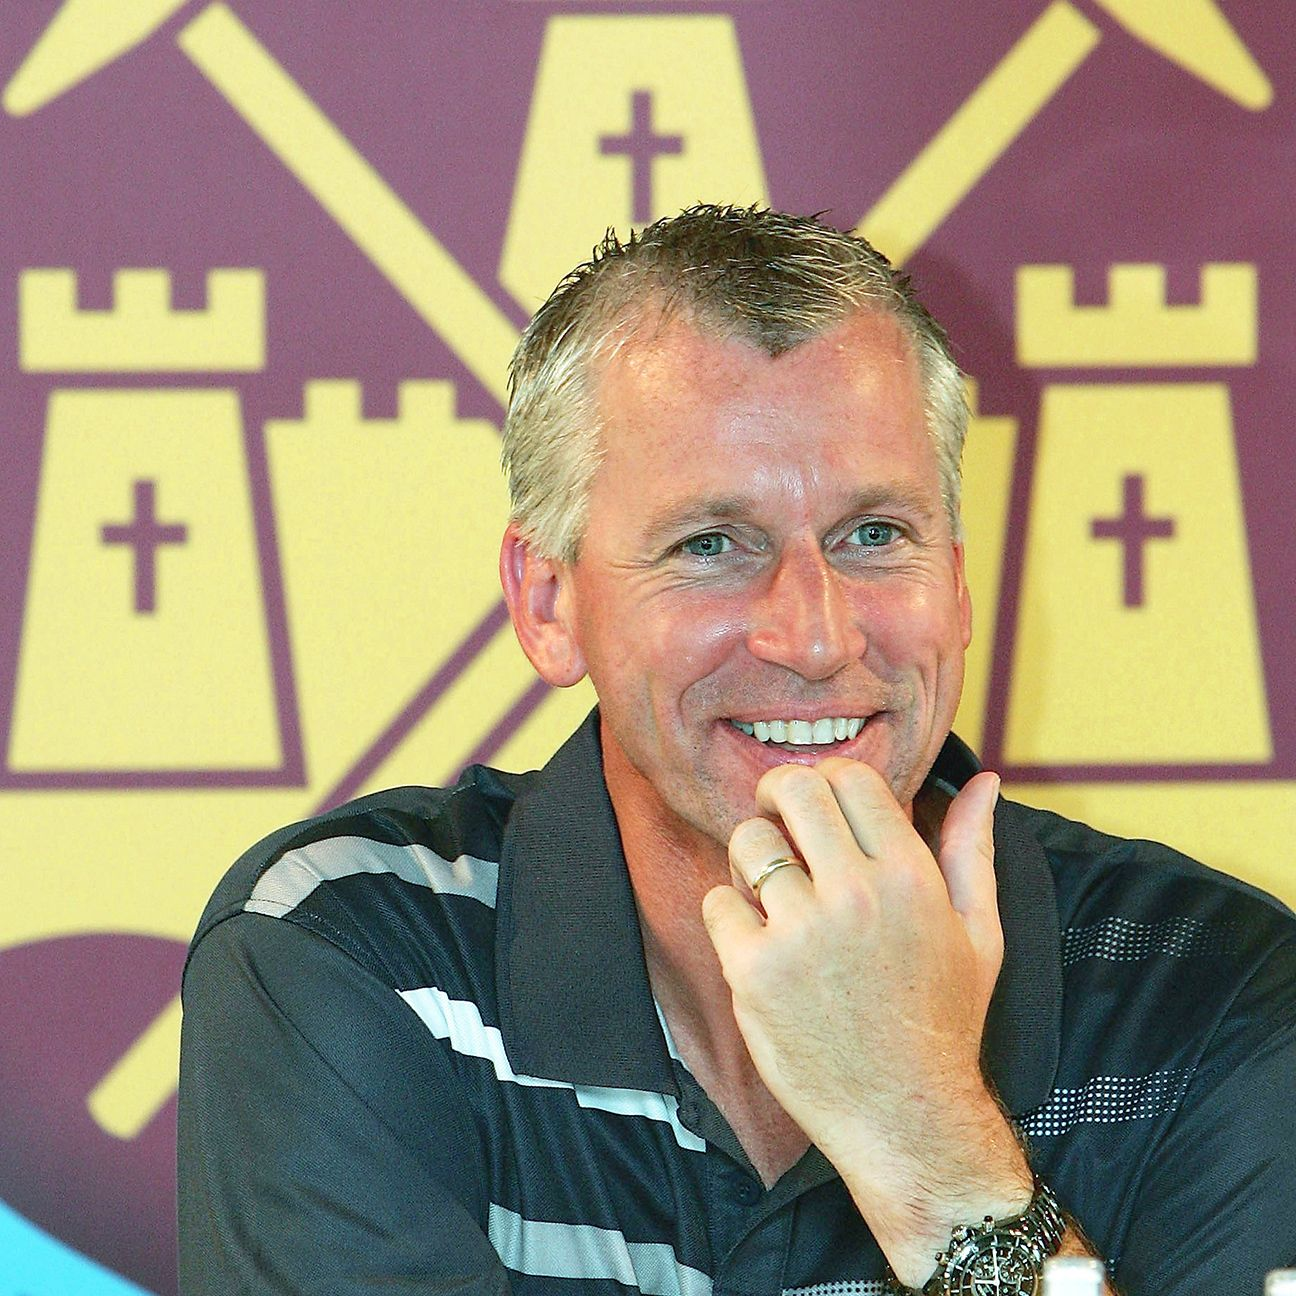 Current Palace boss Alan Pardew led West Ham to an FA Cup final appearance in 2006.